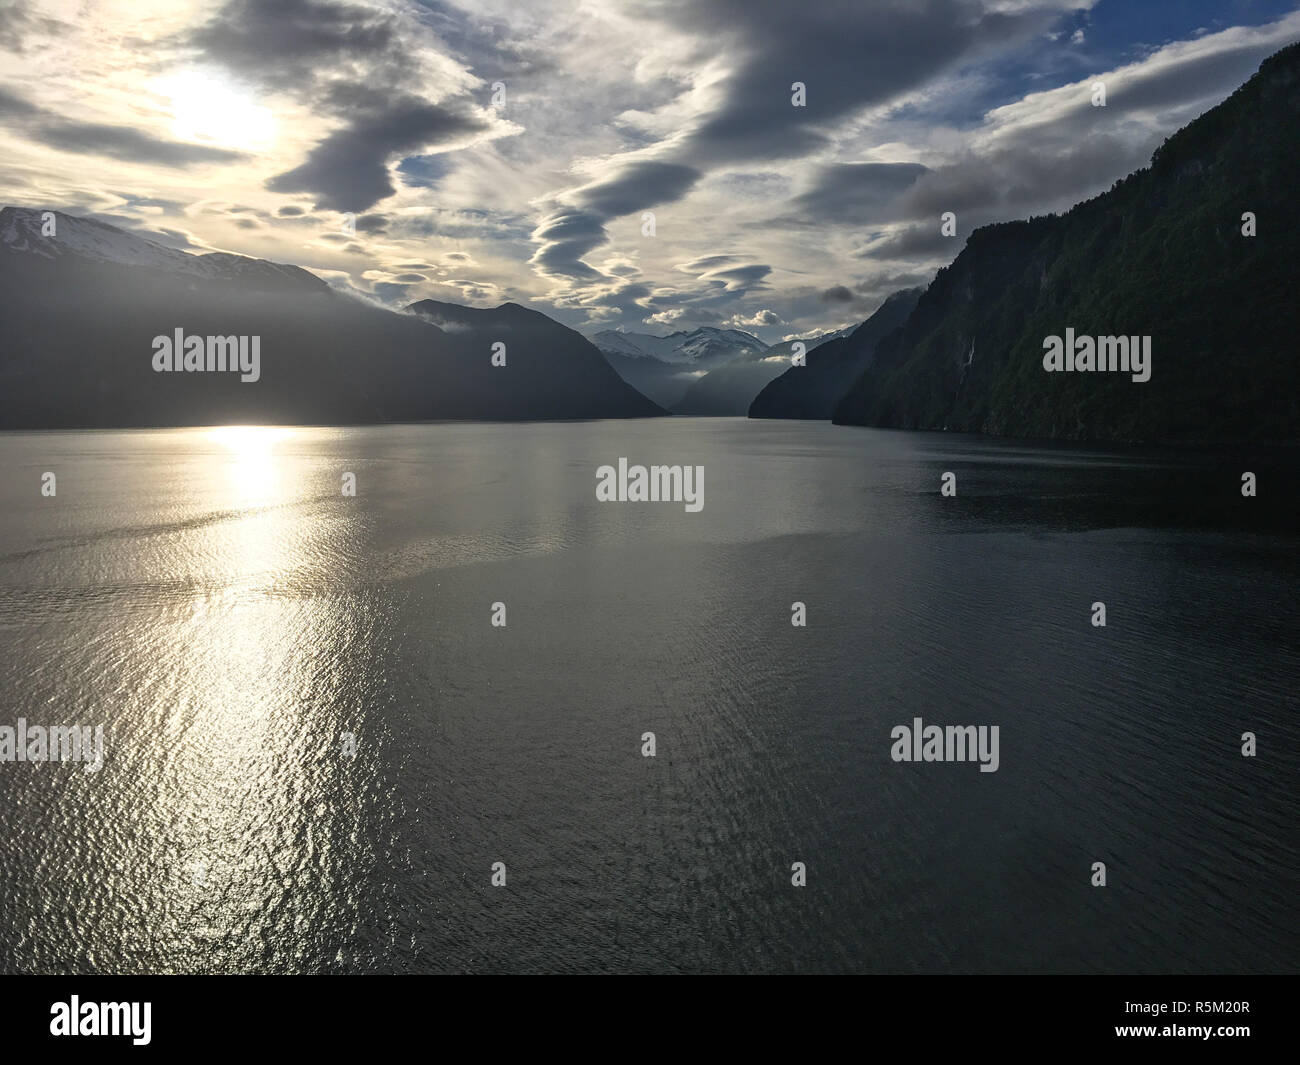 midnight sun at the gairangerfjord - Stock Image